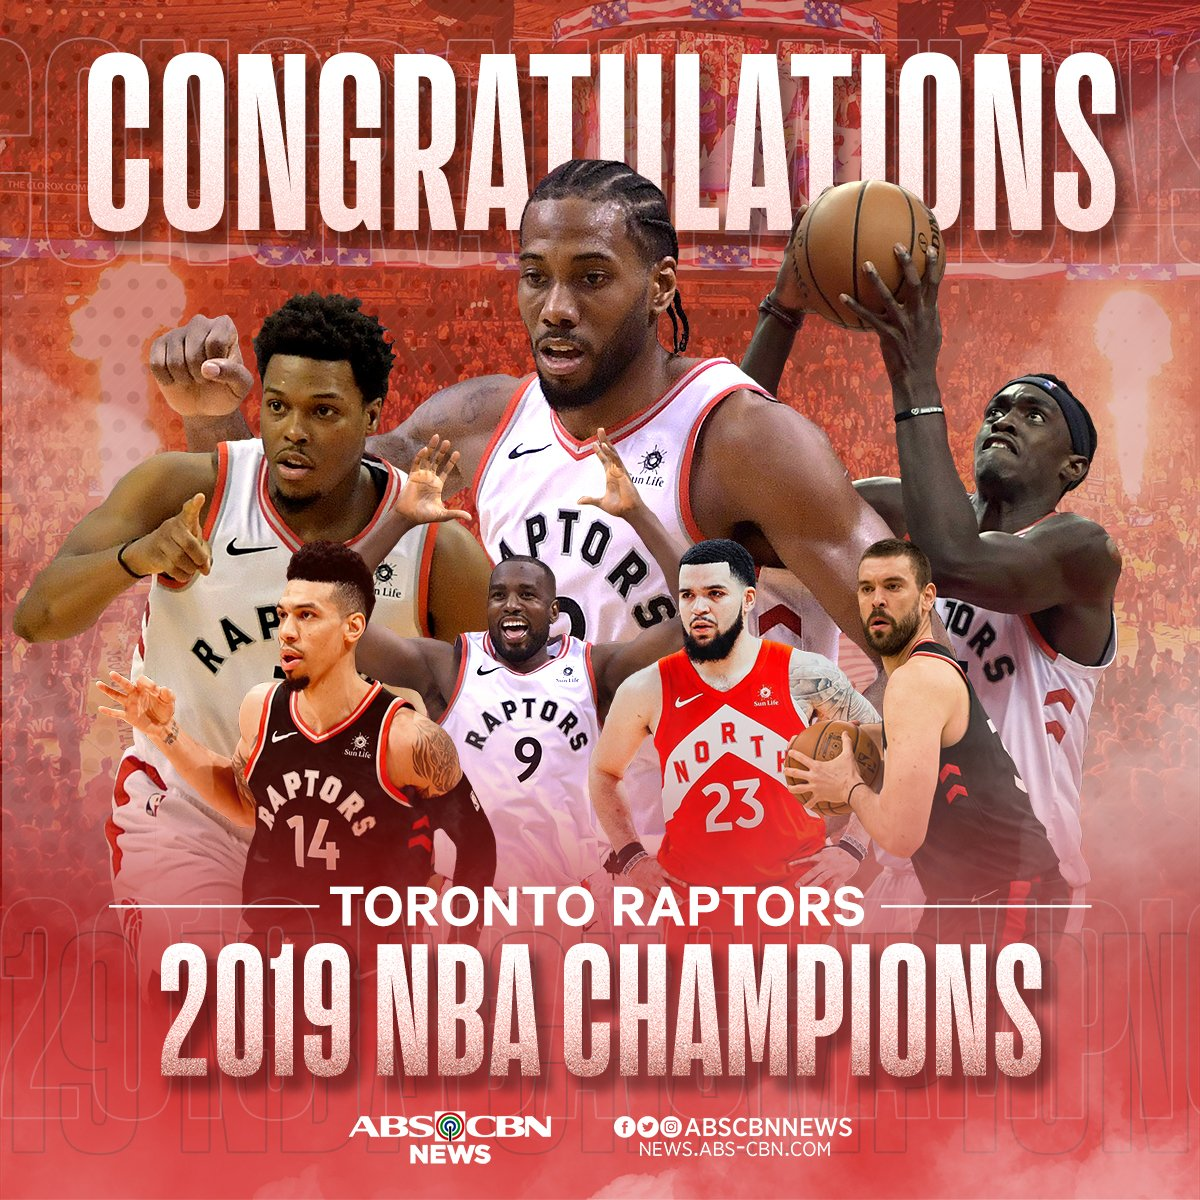 Warriors Year By Year: Toronto Raptors: WE THE NORTH! Toronto Raptors Capture